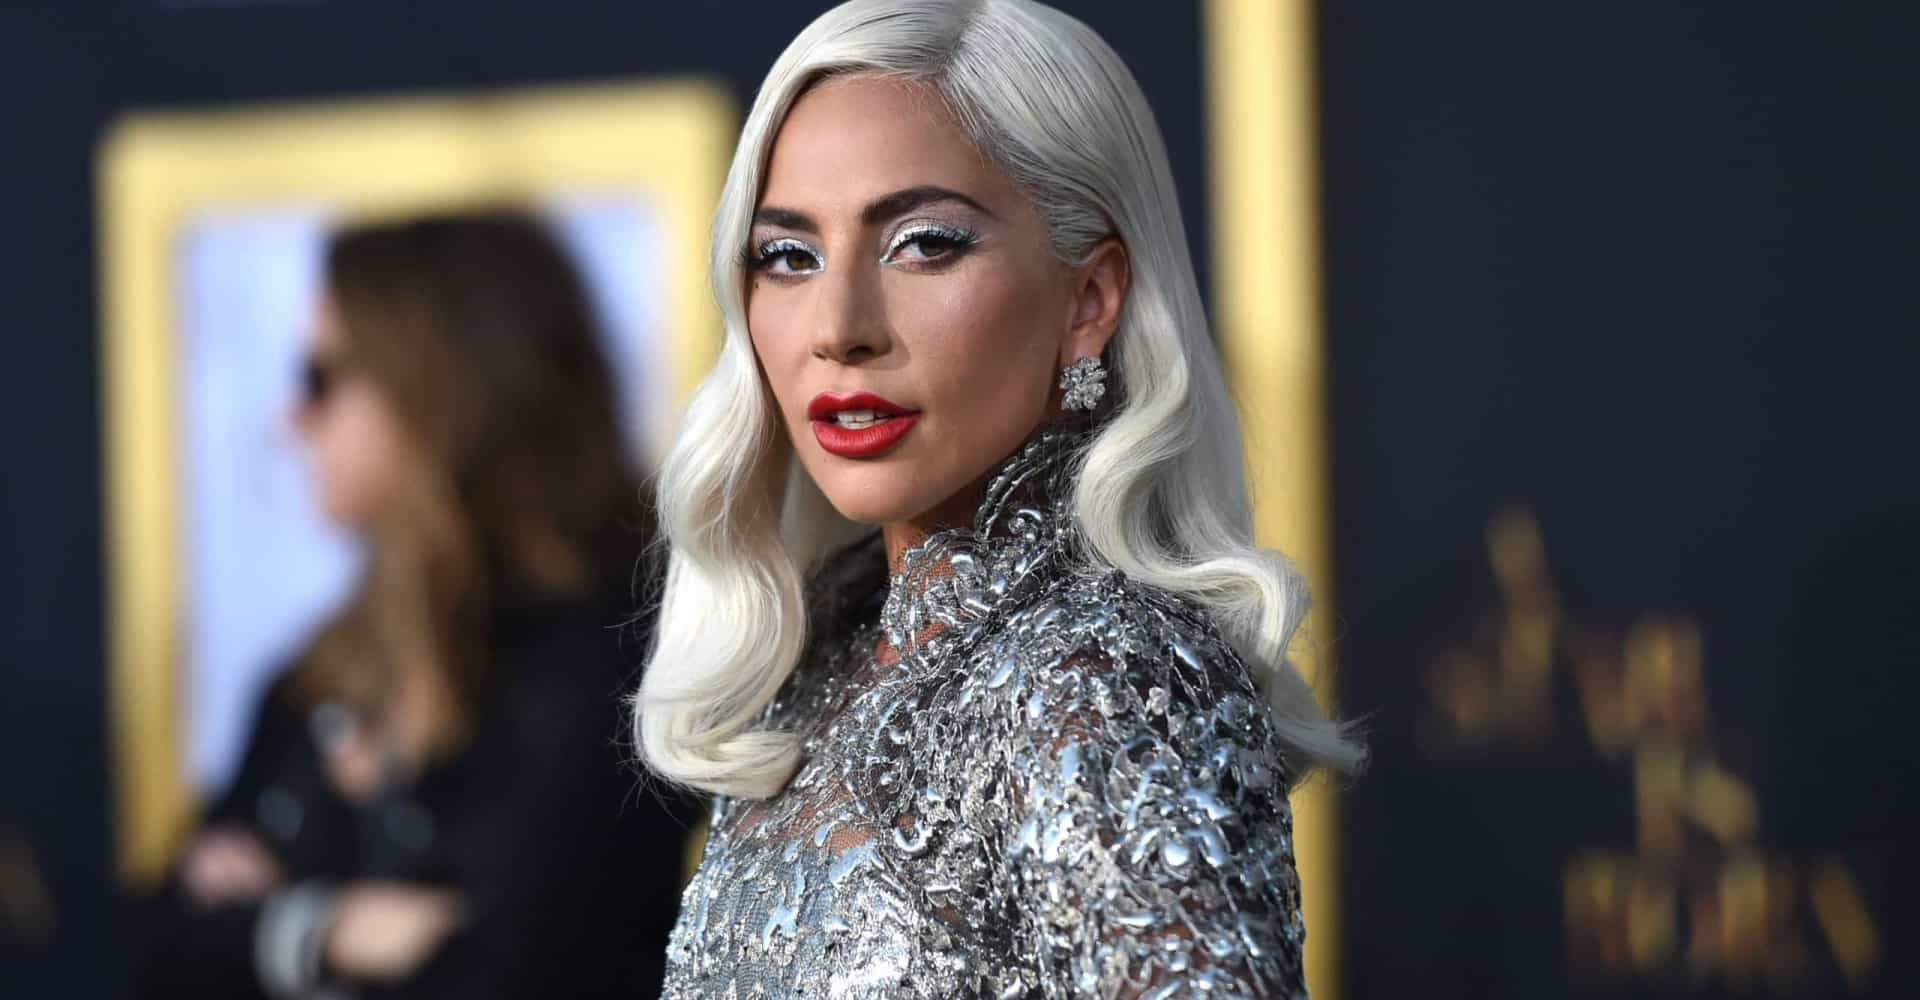 Lady Gaga and other artists who have been accused of plagiarism